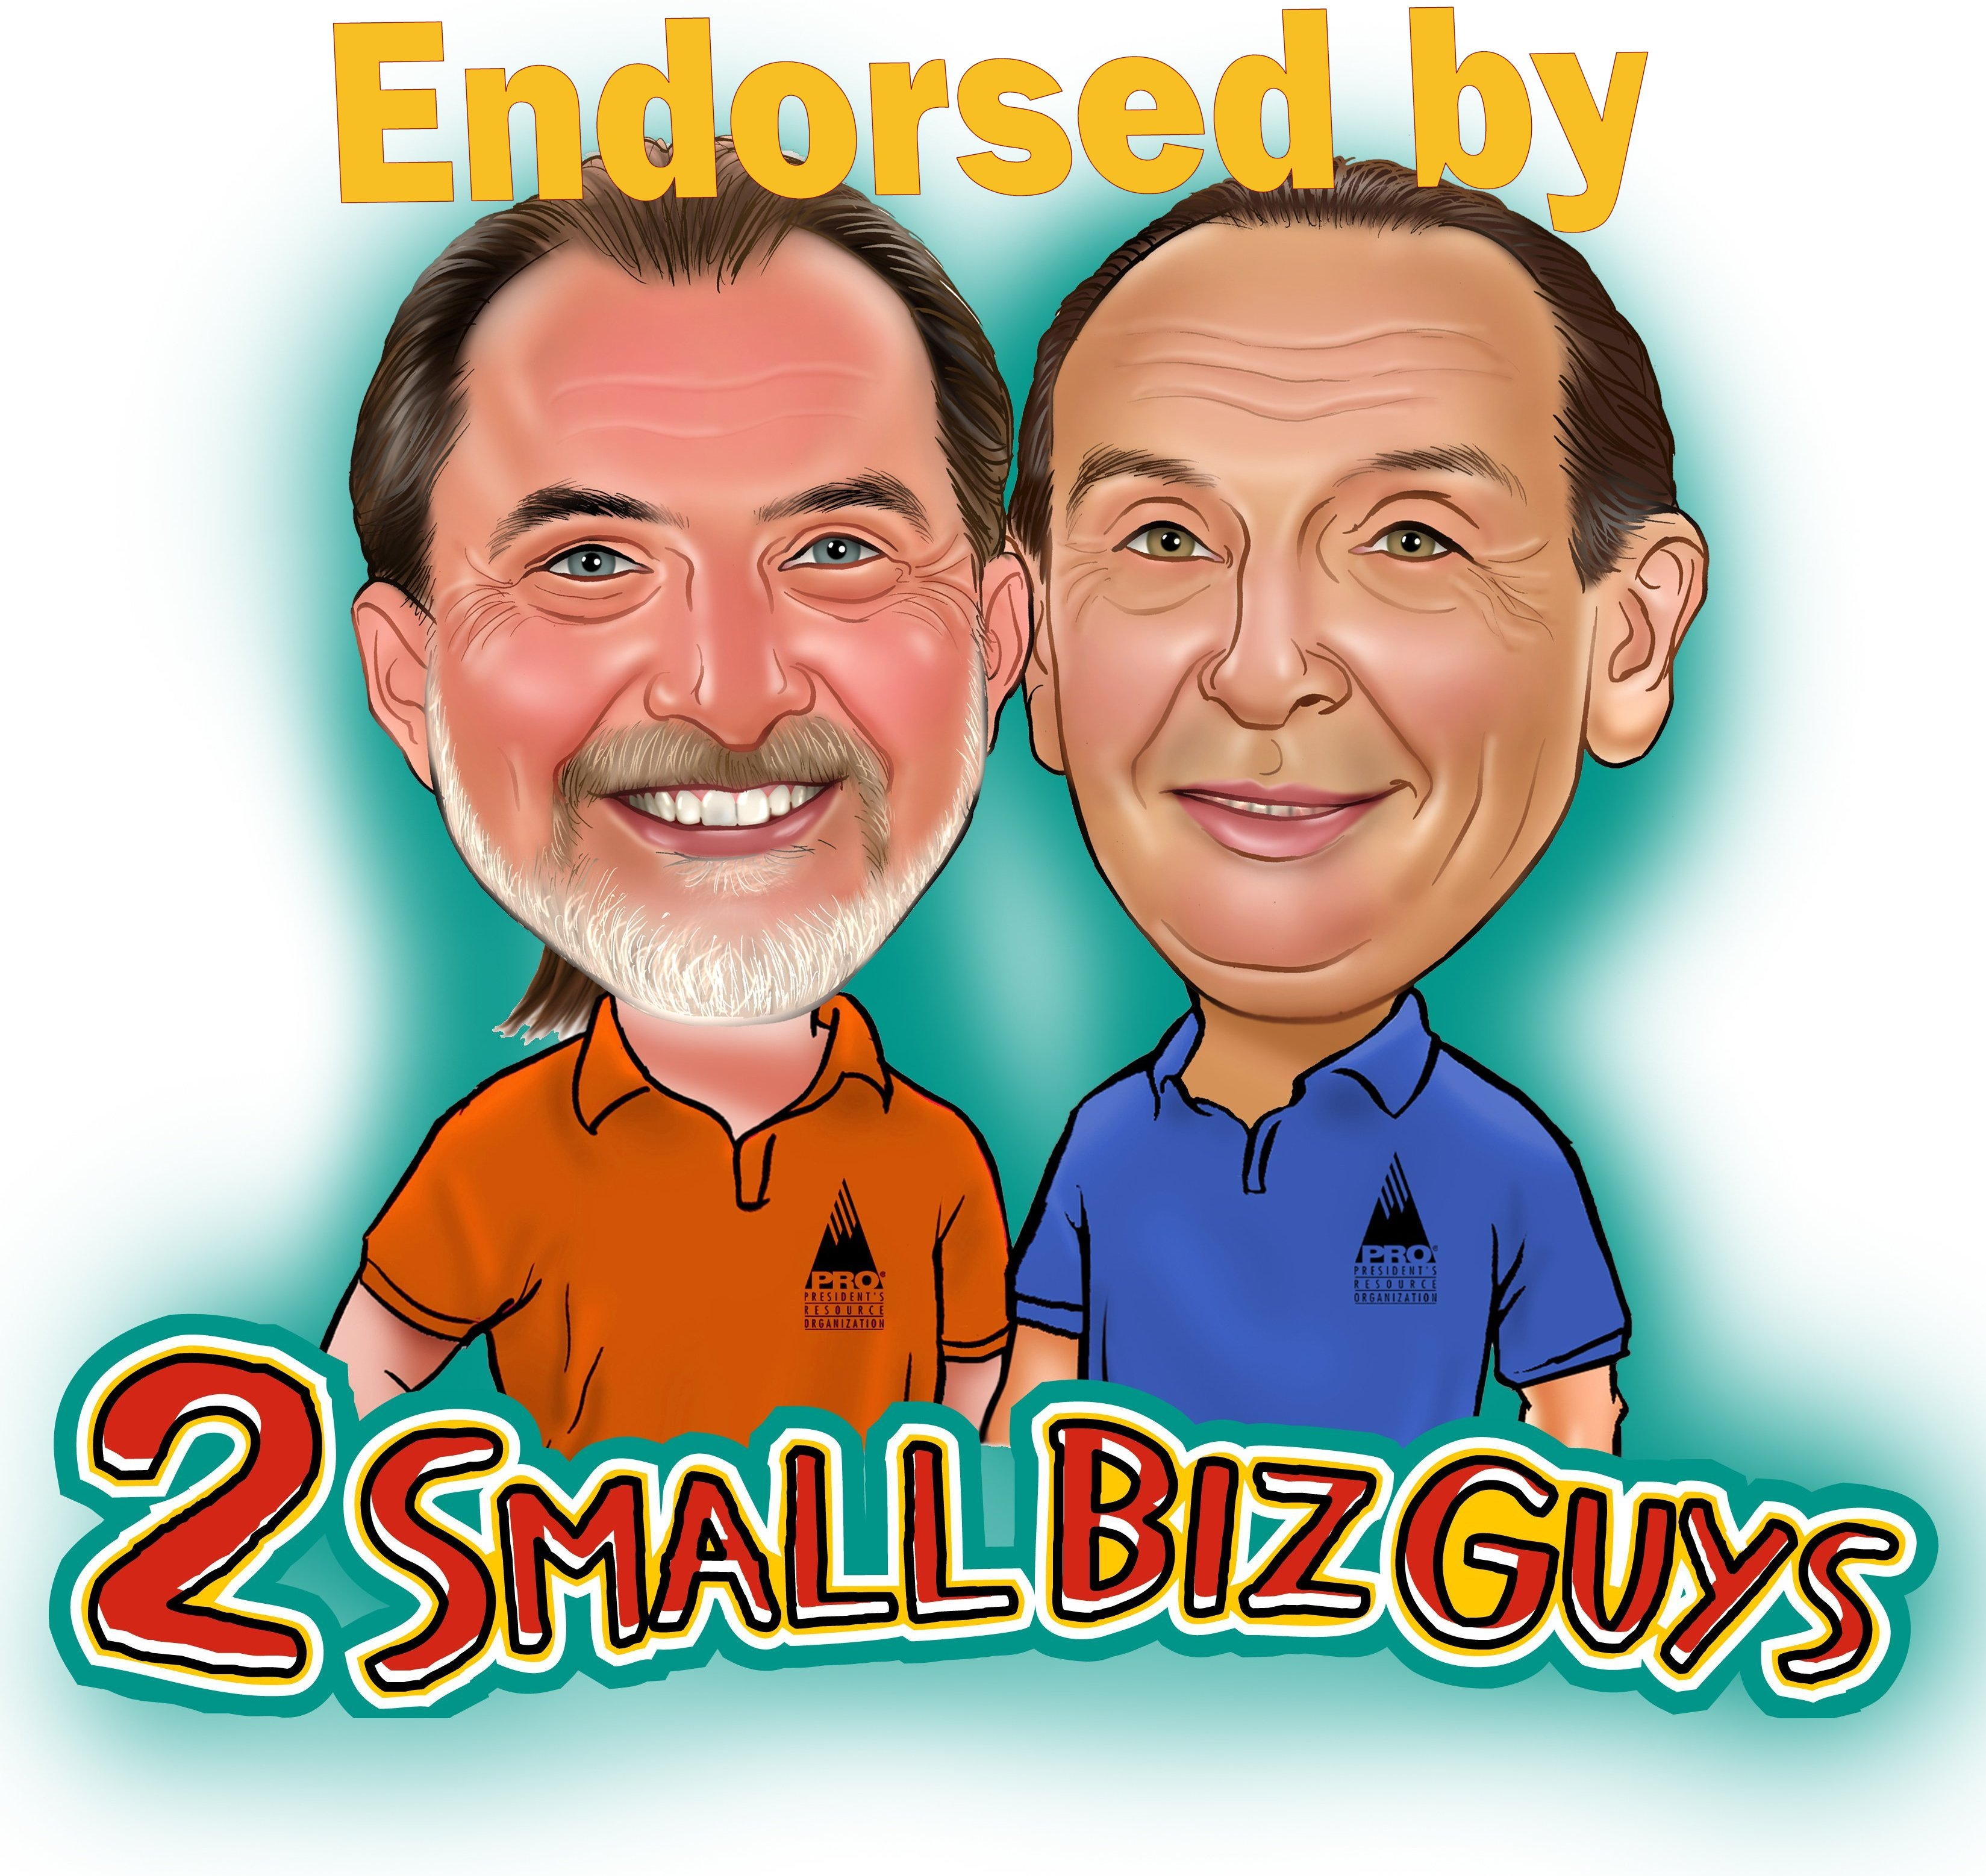 2 Small Biz Guys endorse the Independent Party of Arizona